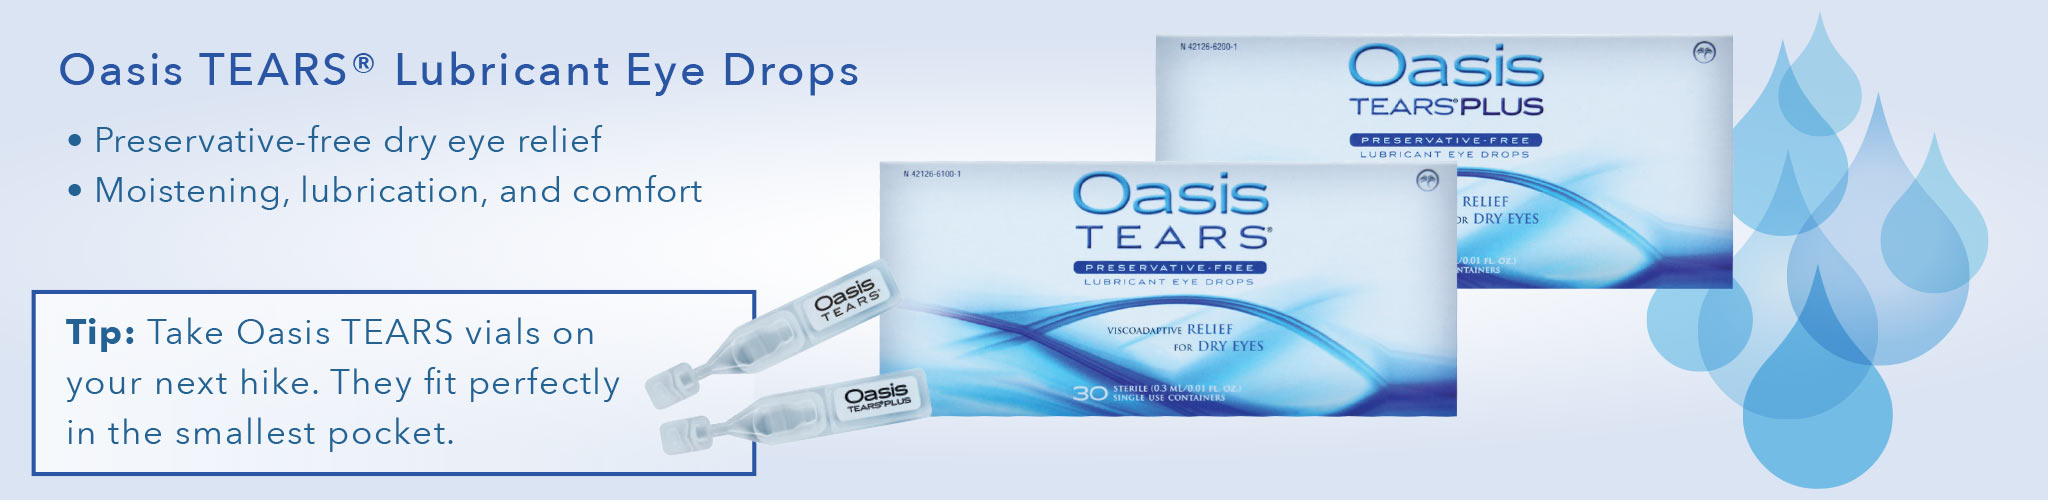 Oasis TEARS product banner